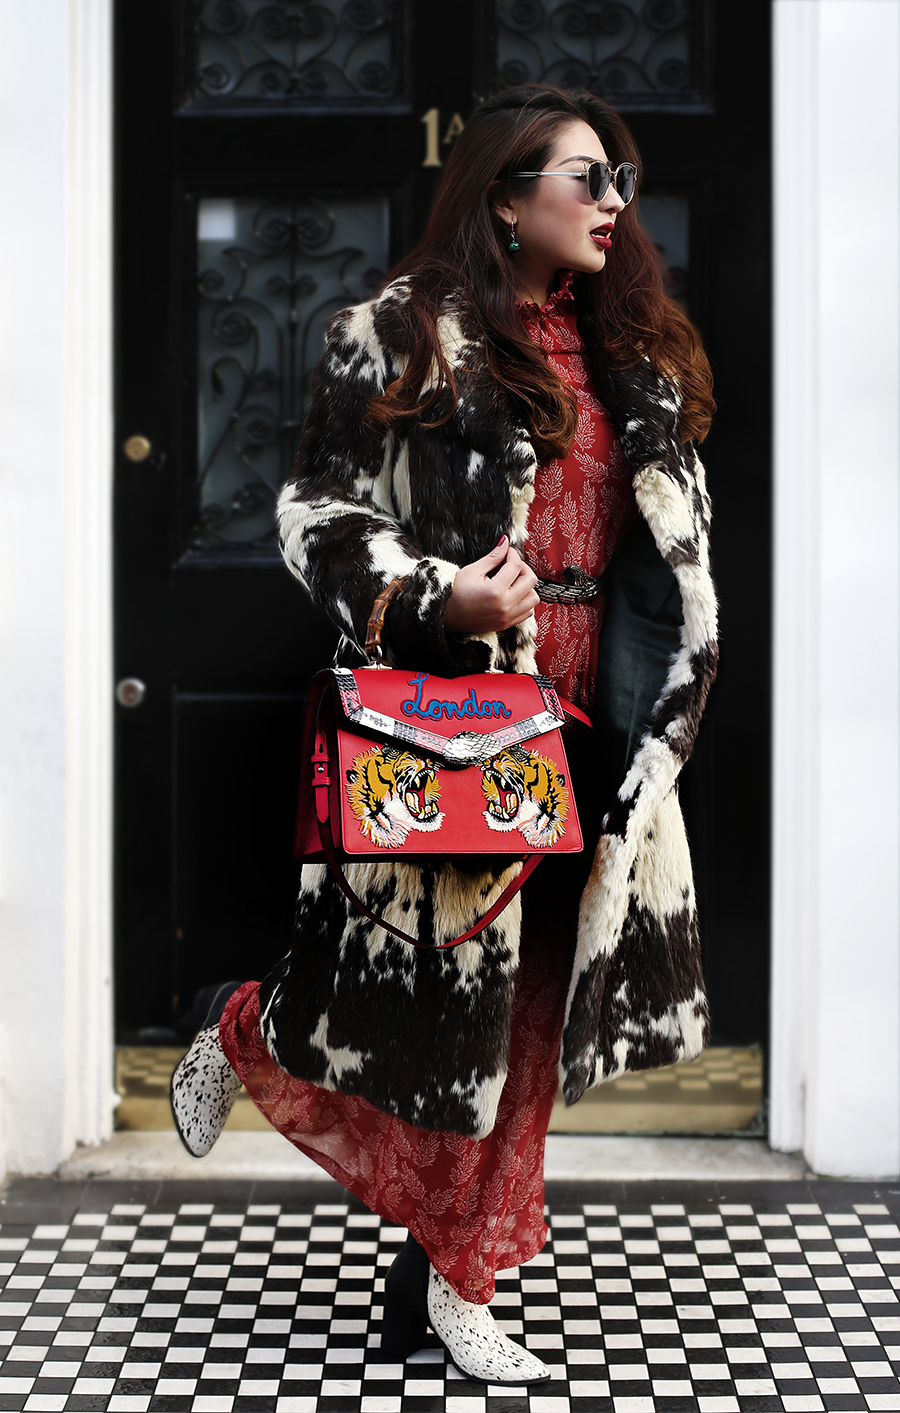 What's In My Handbag: Gucci Lilith, London limited edition